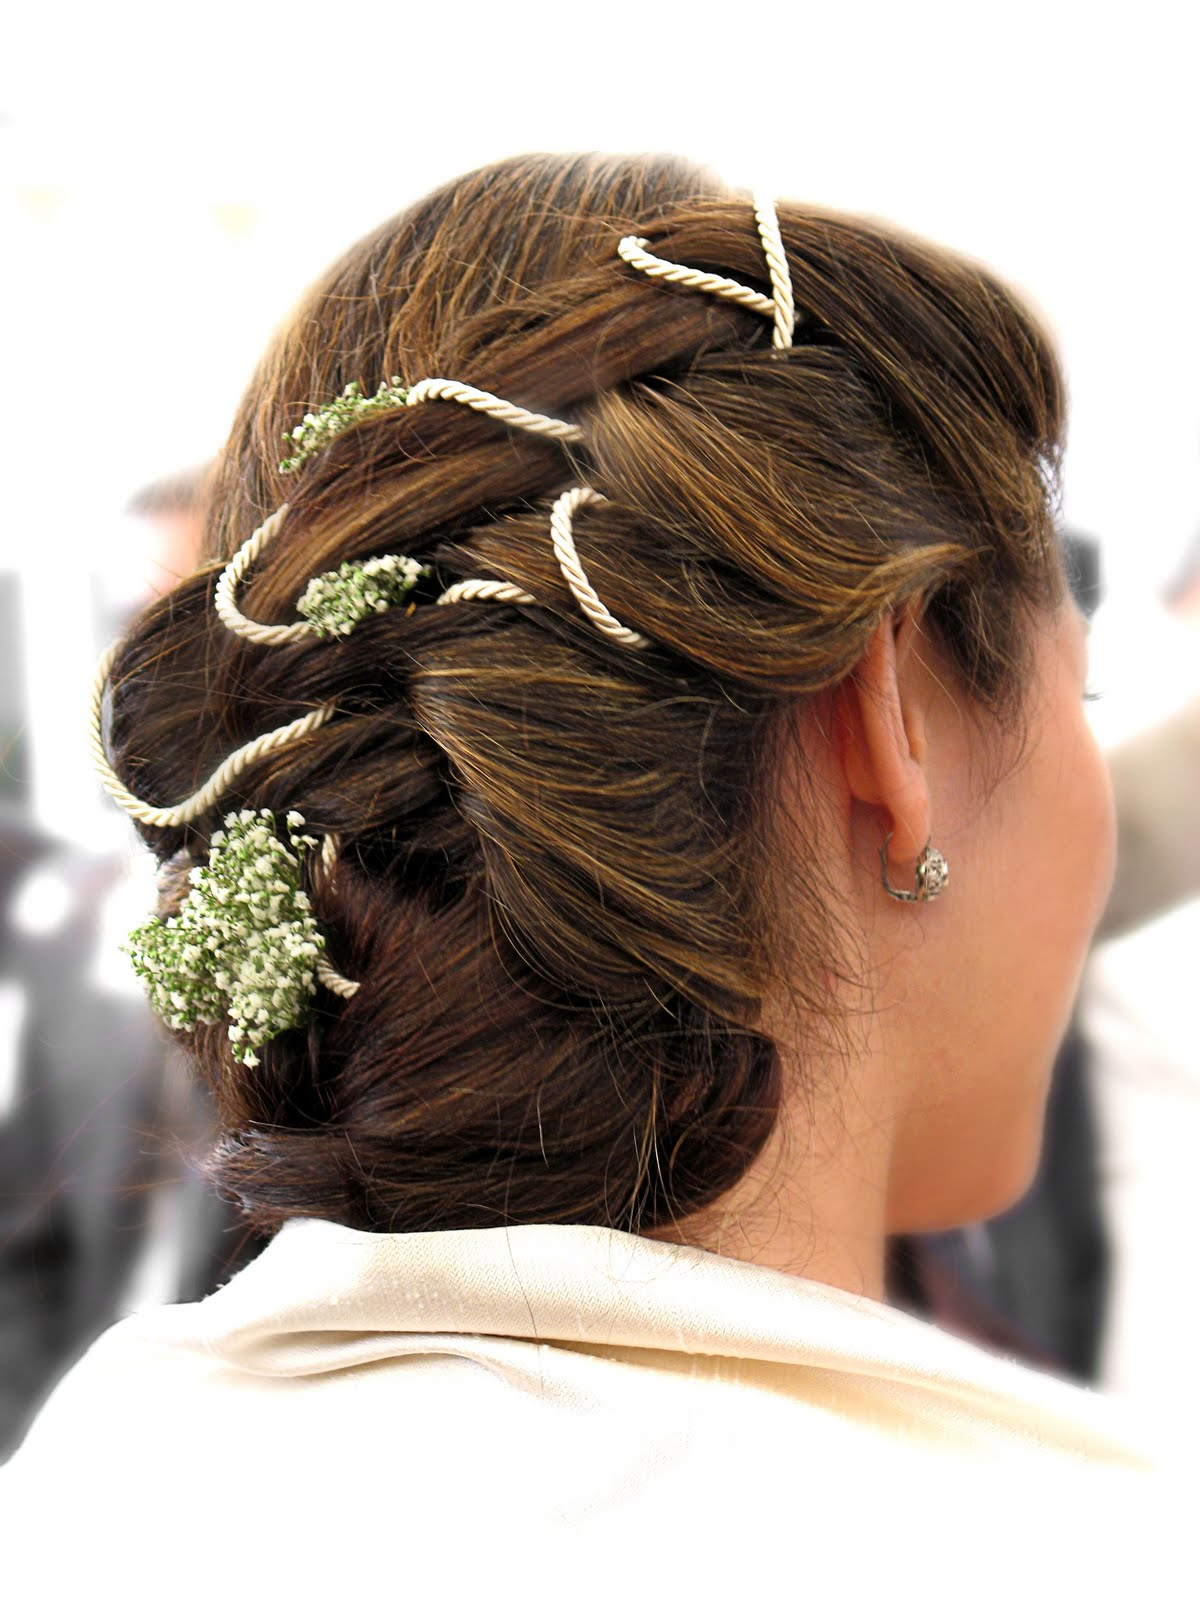 Summer and Spring Hair Styling Tips for a Gorgeous Wedding Hairstyle